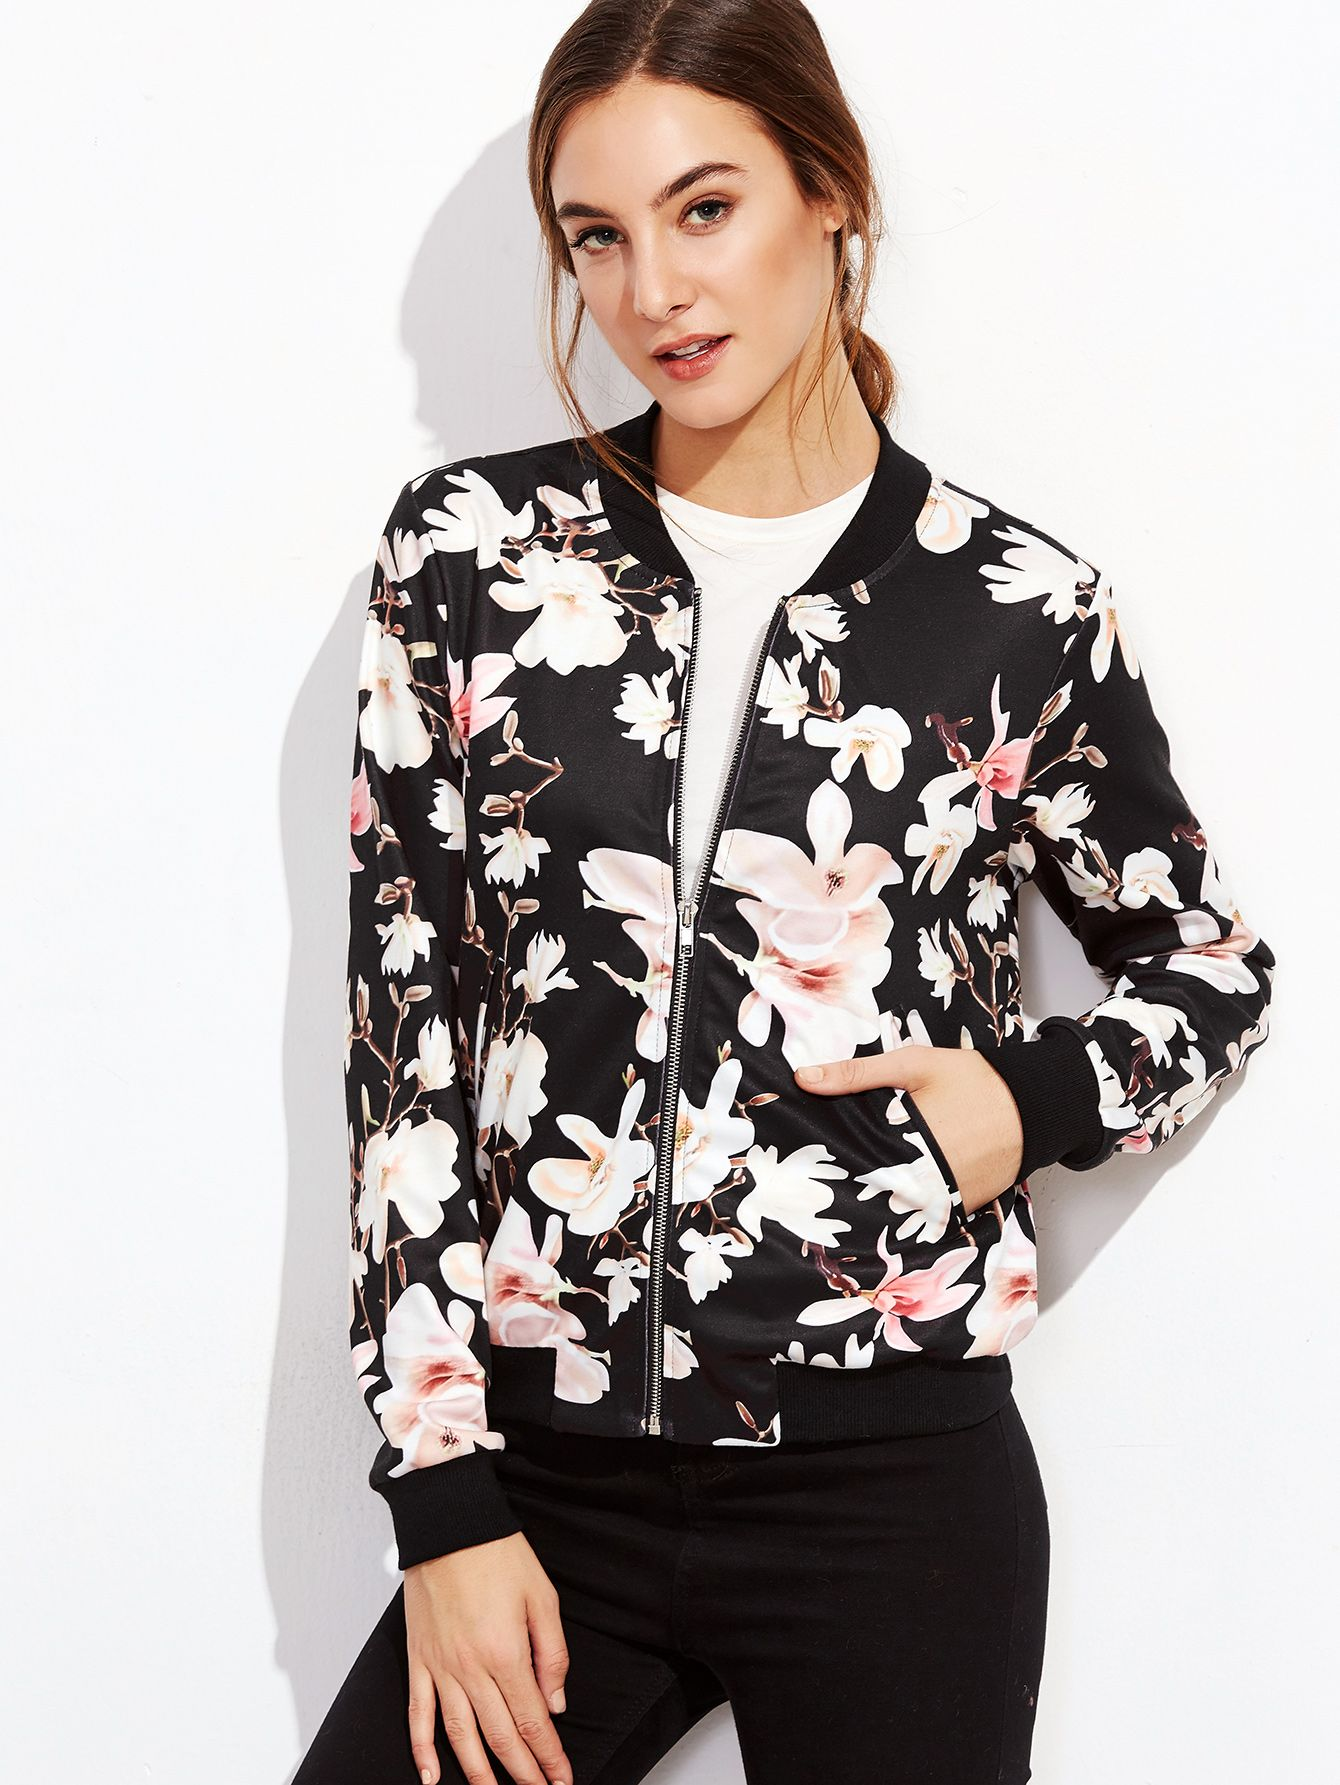 30ec933e379 Shop Black Flower Print Zip Up Bomber Jacket online. SheIn offers Black  Flower Print Zip Up Bomber Jacket   more to fit your fashionable needs.